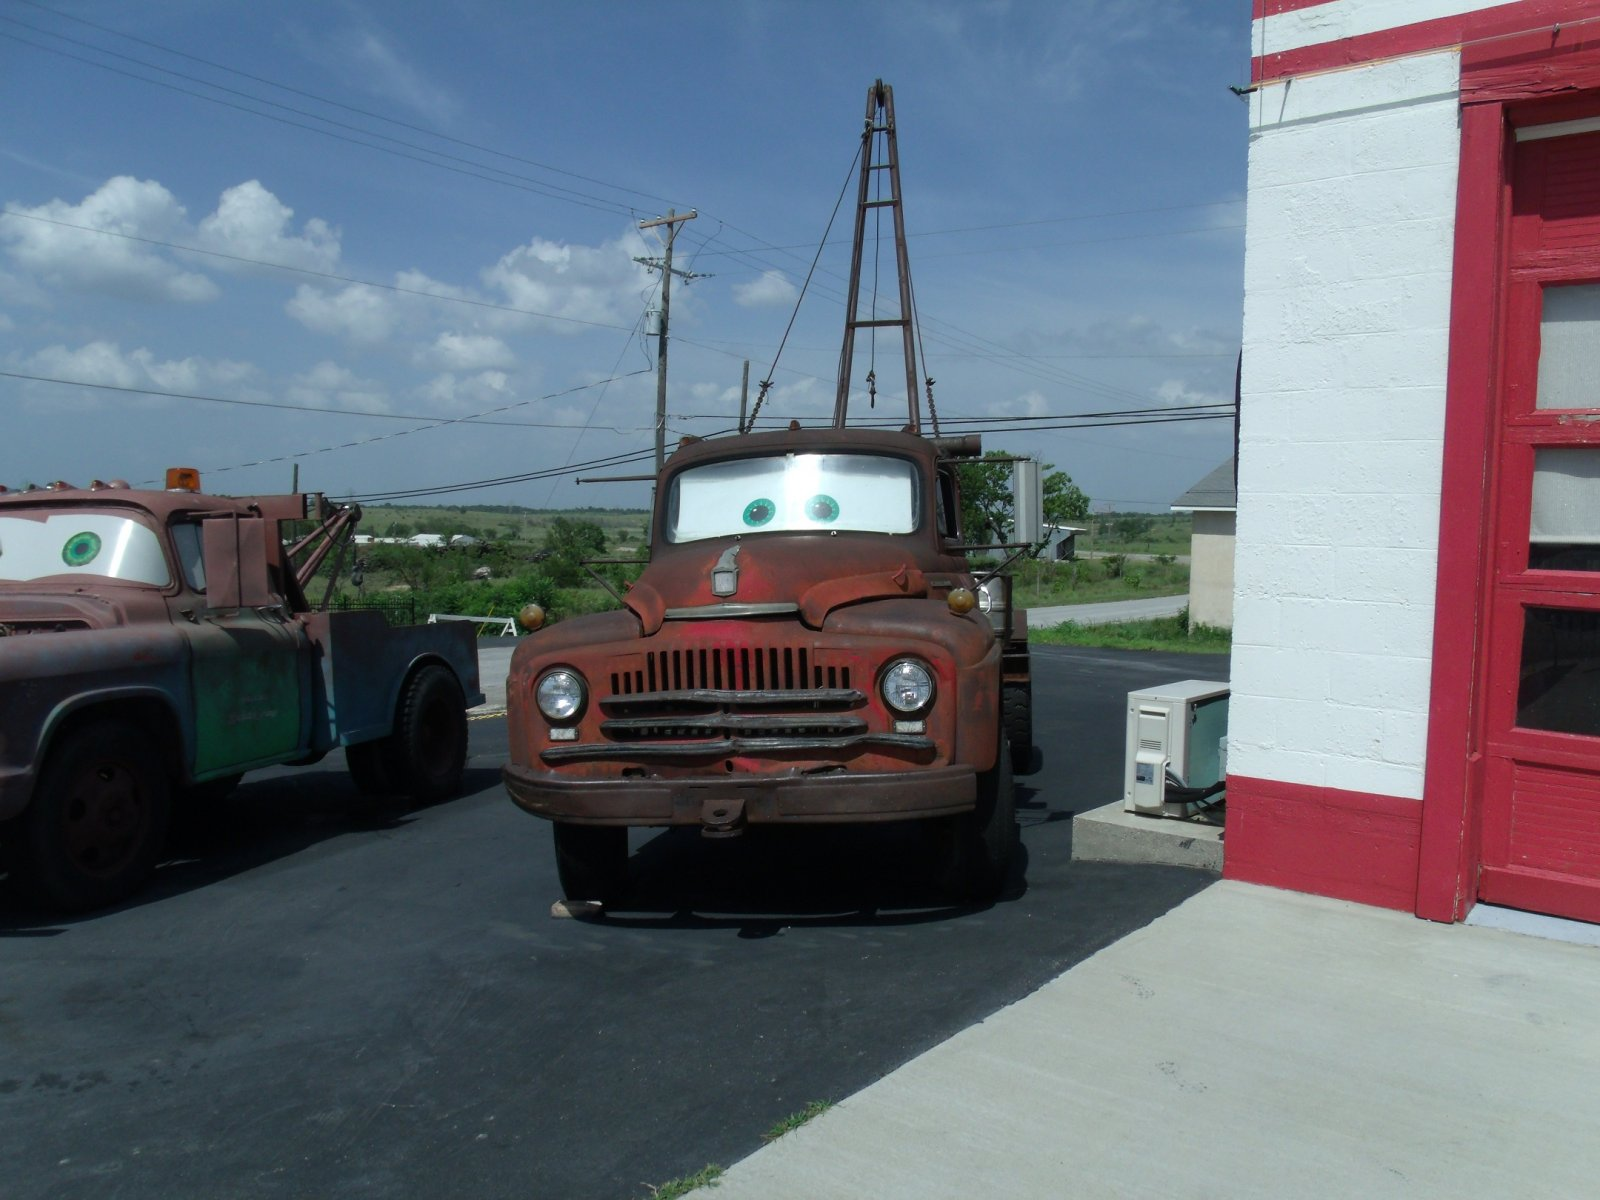 Route 66 day one 172 real mater.jpg